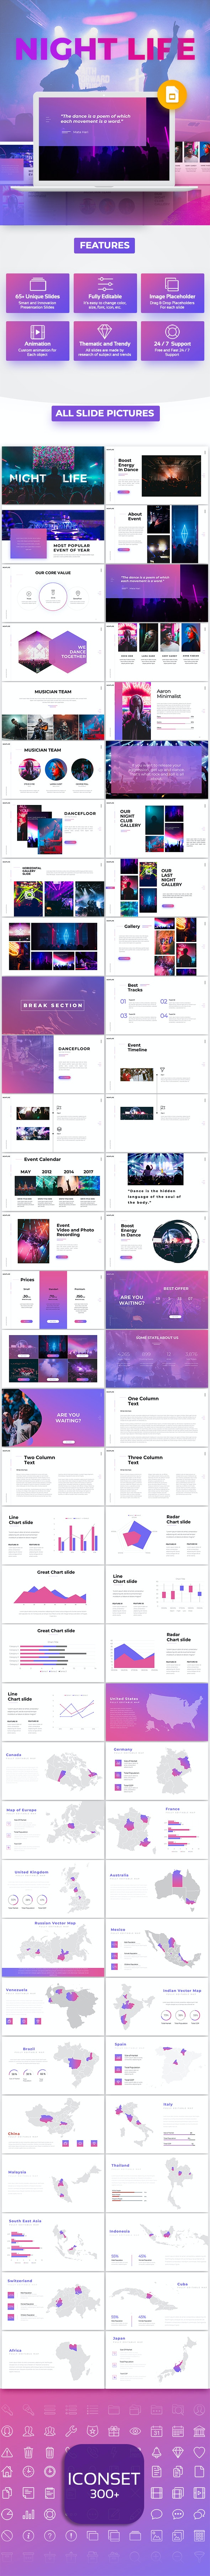 Night Life - Club Google Slide Template - Google Slides Presentation Templates